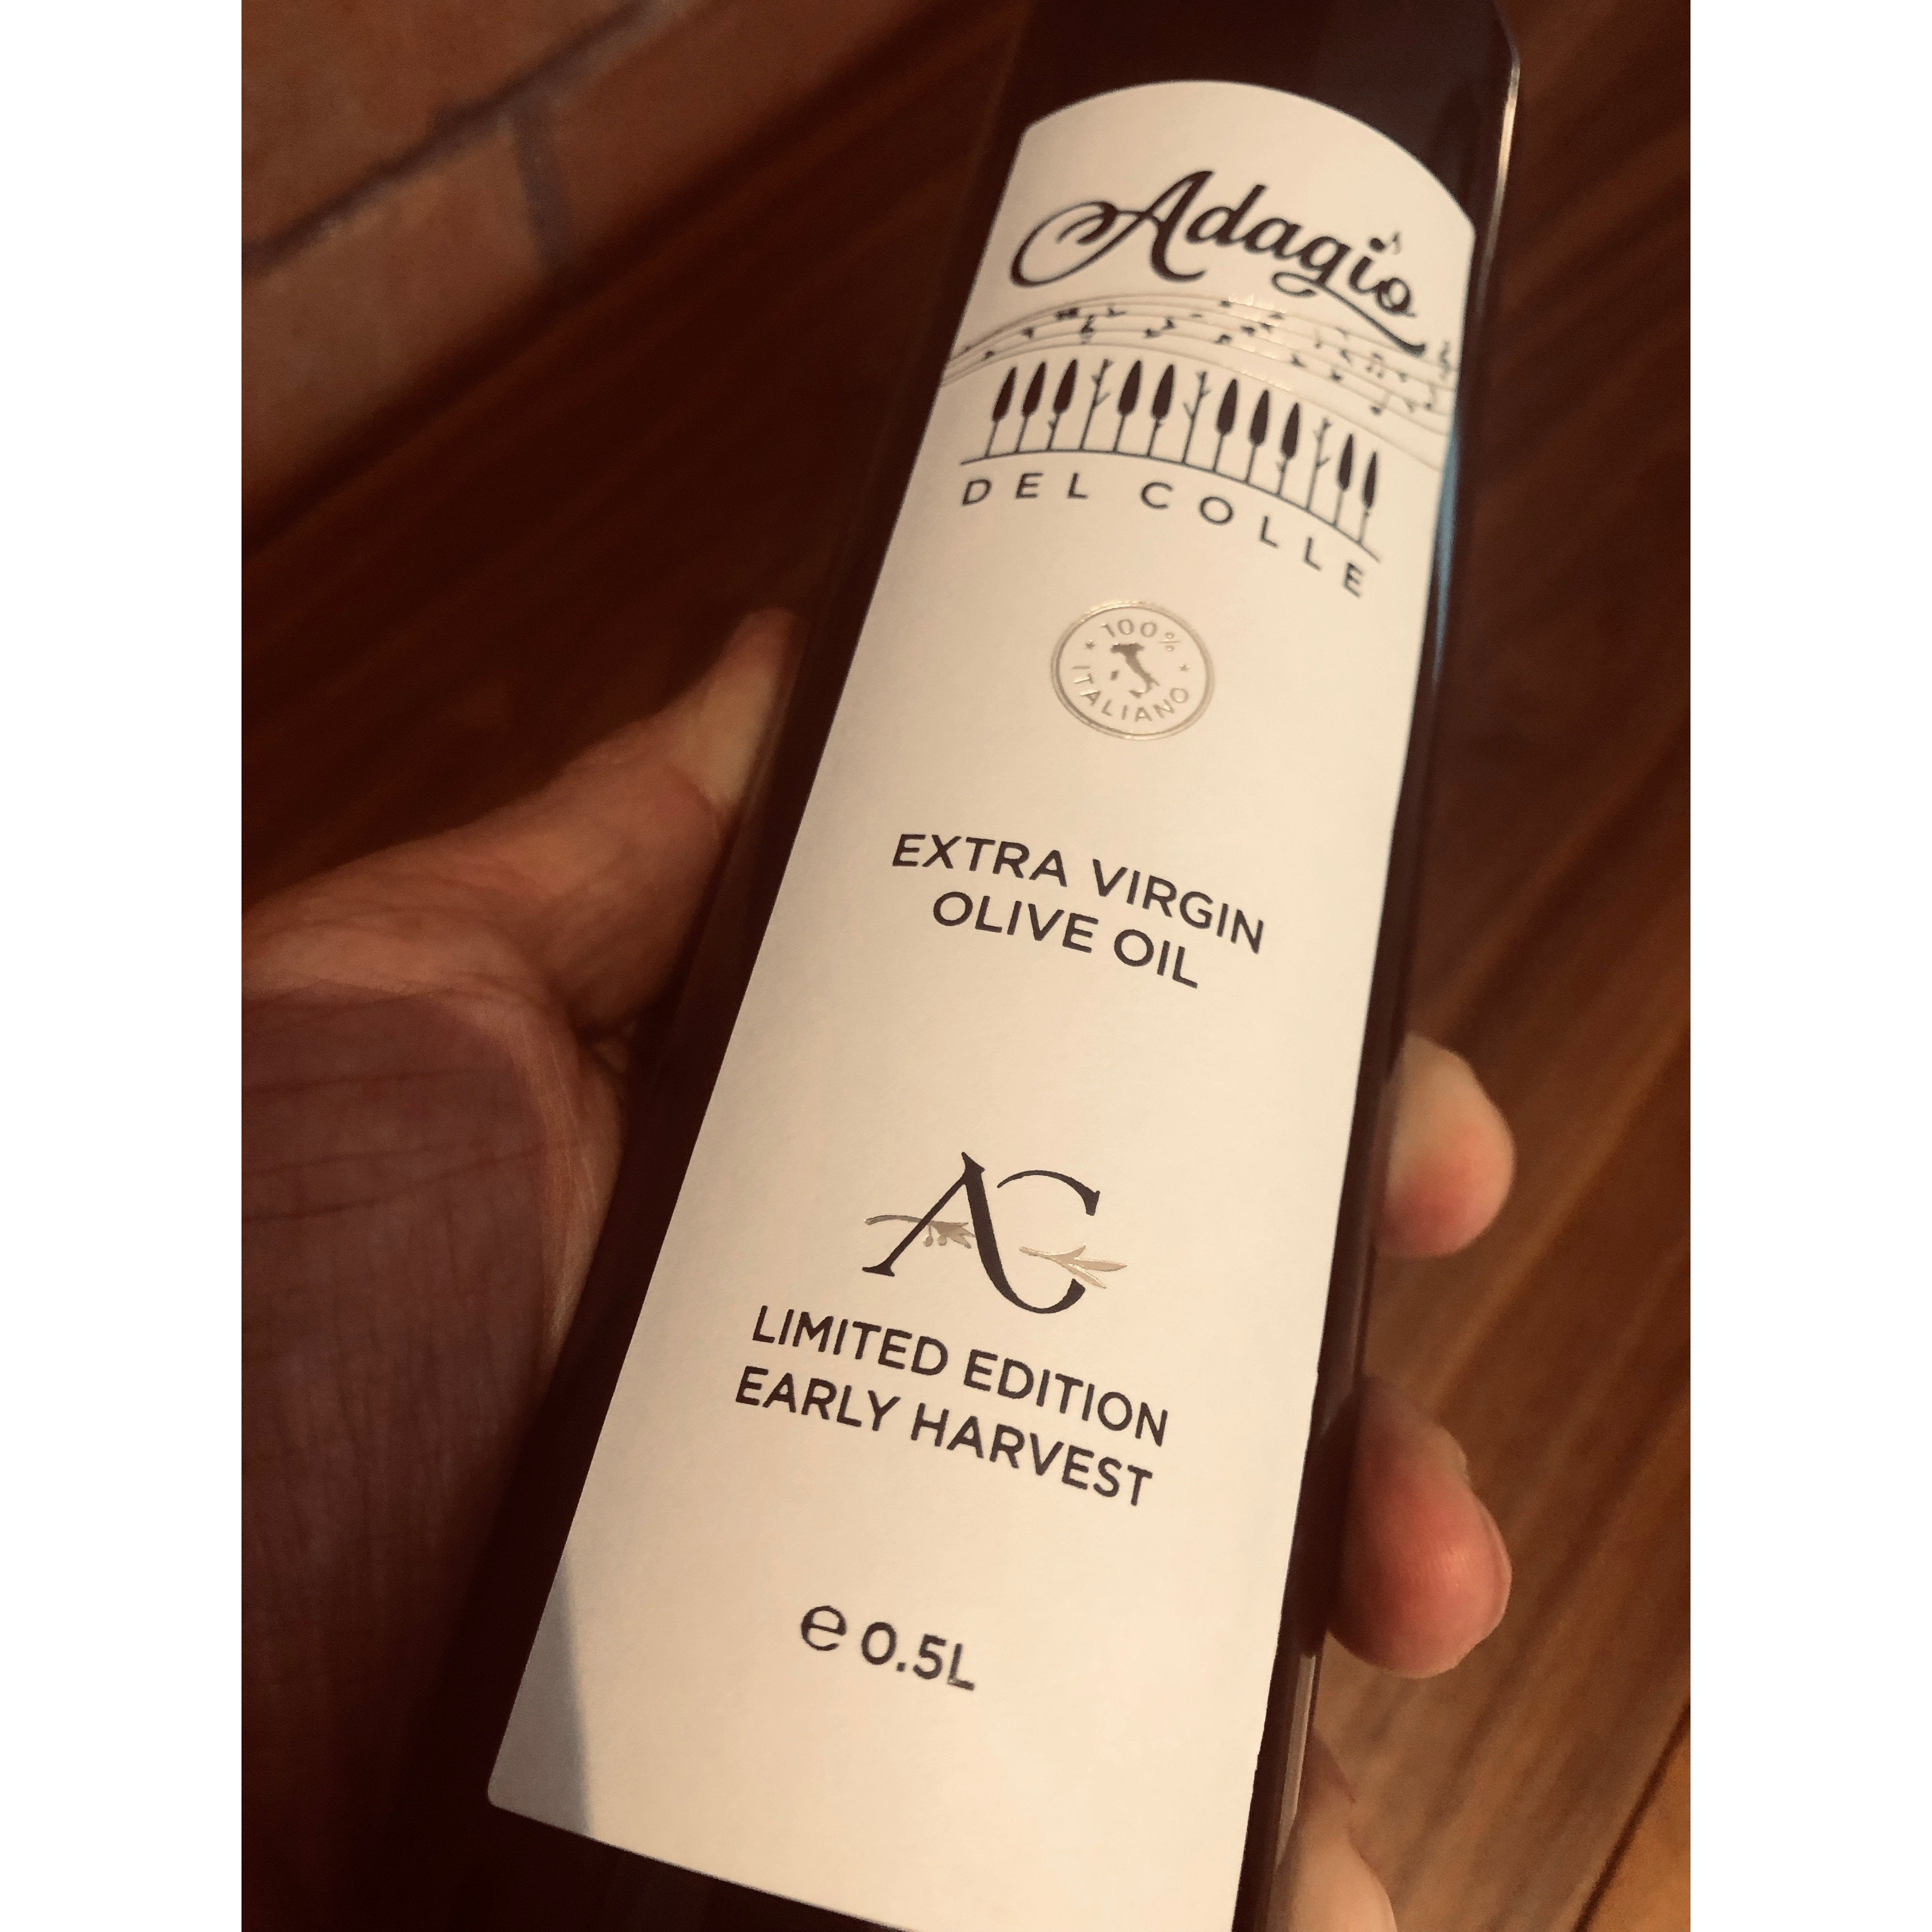 Adagio #8 - 2017 - Abandoned Grove Extra Virgin Olive Oil